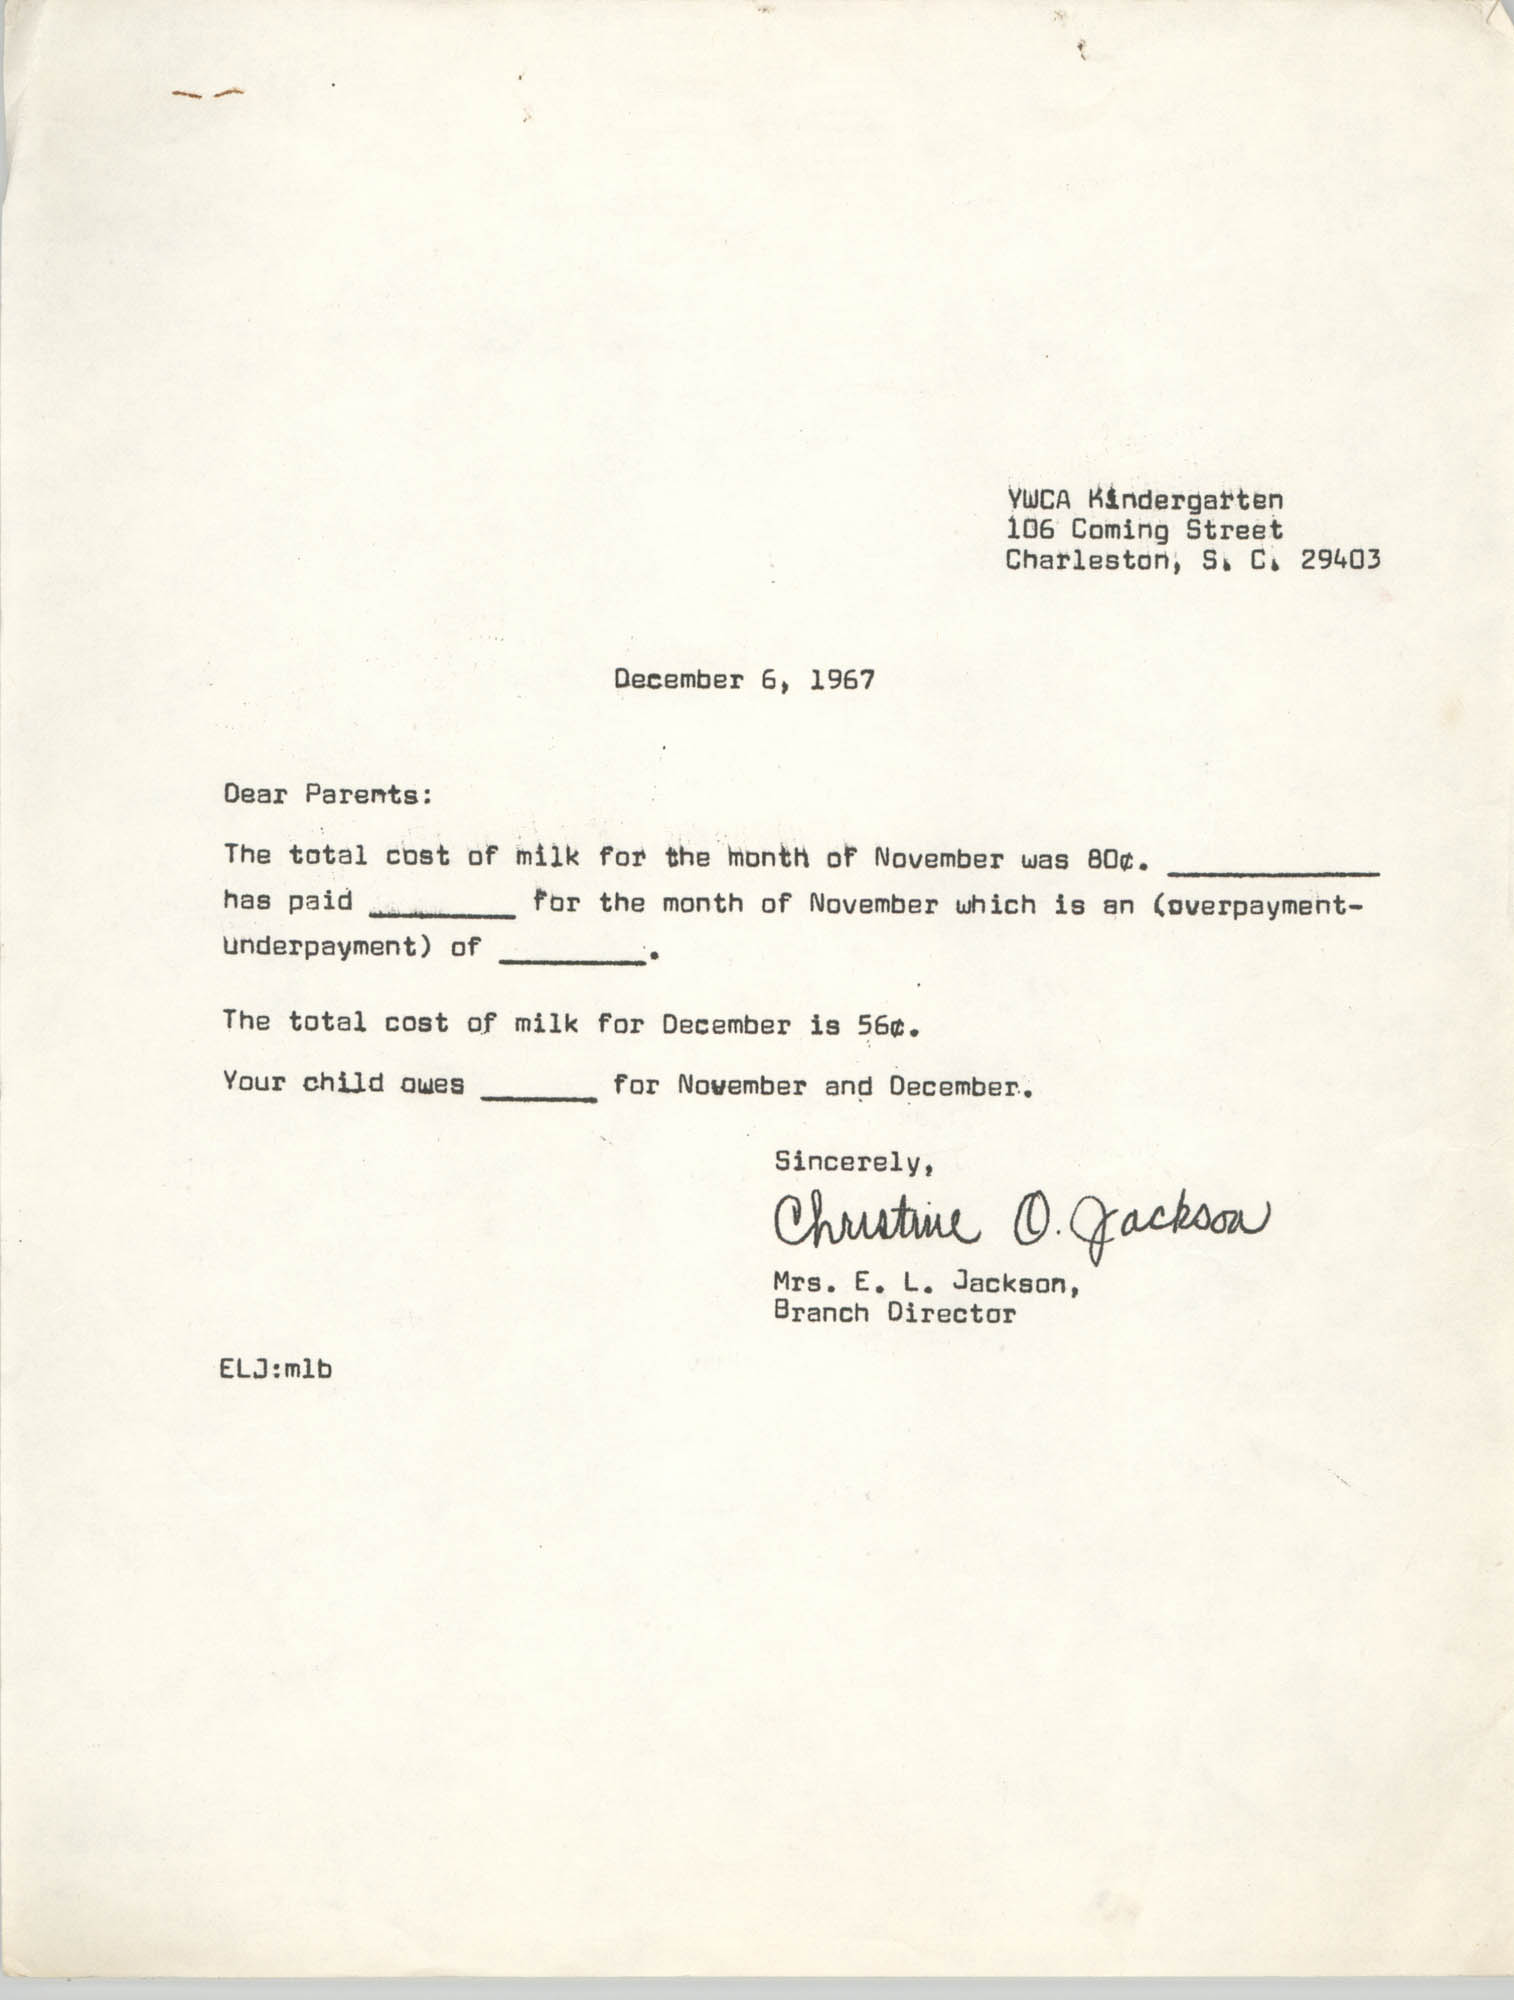 Letter from Christine O. Jackson to Parents, December 6, 1967